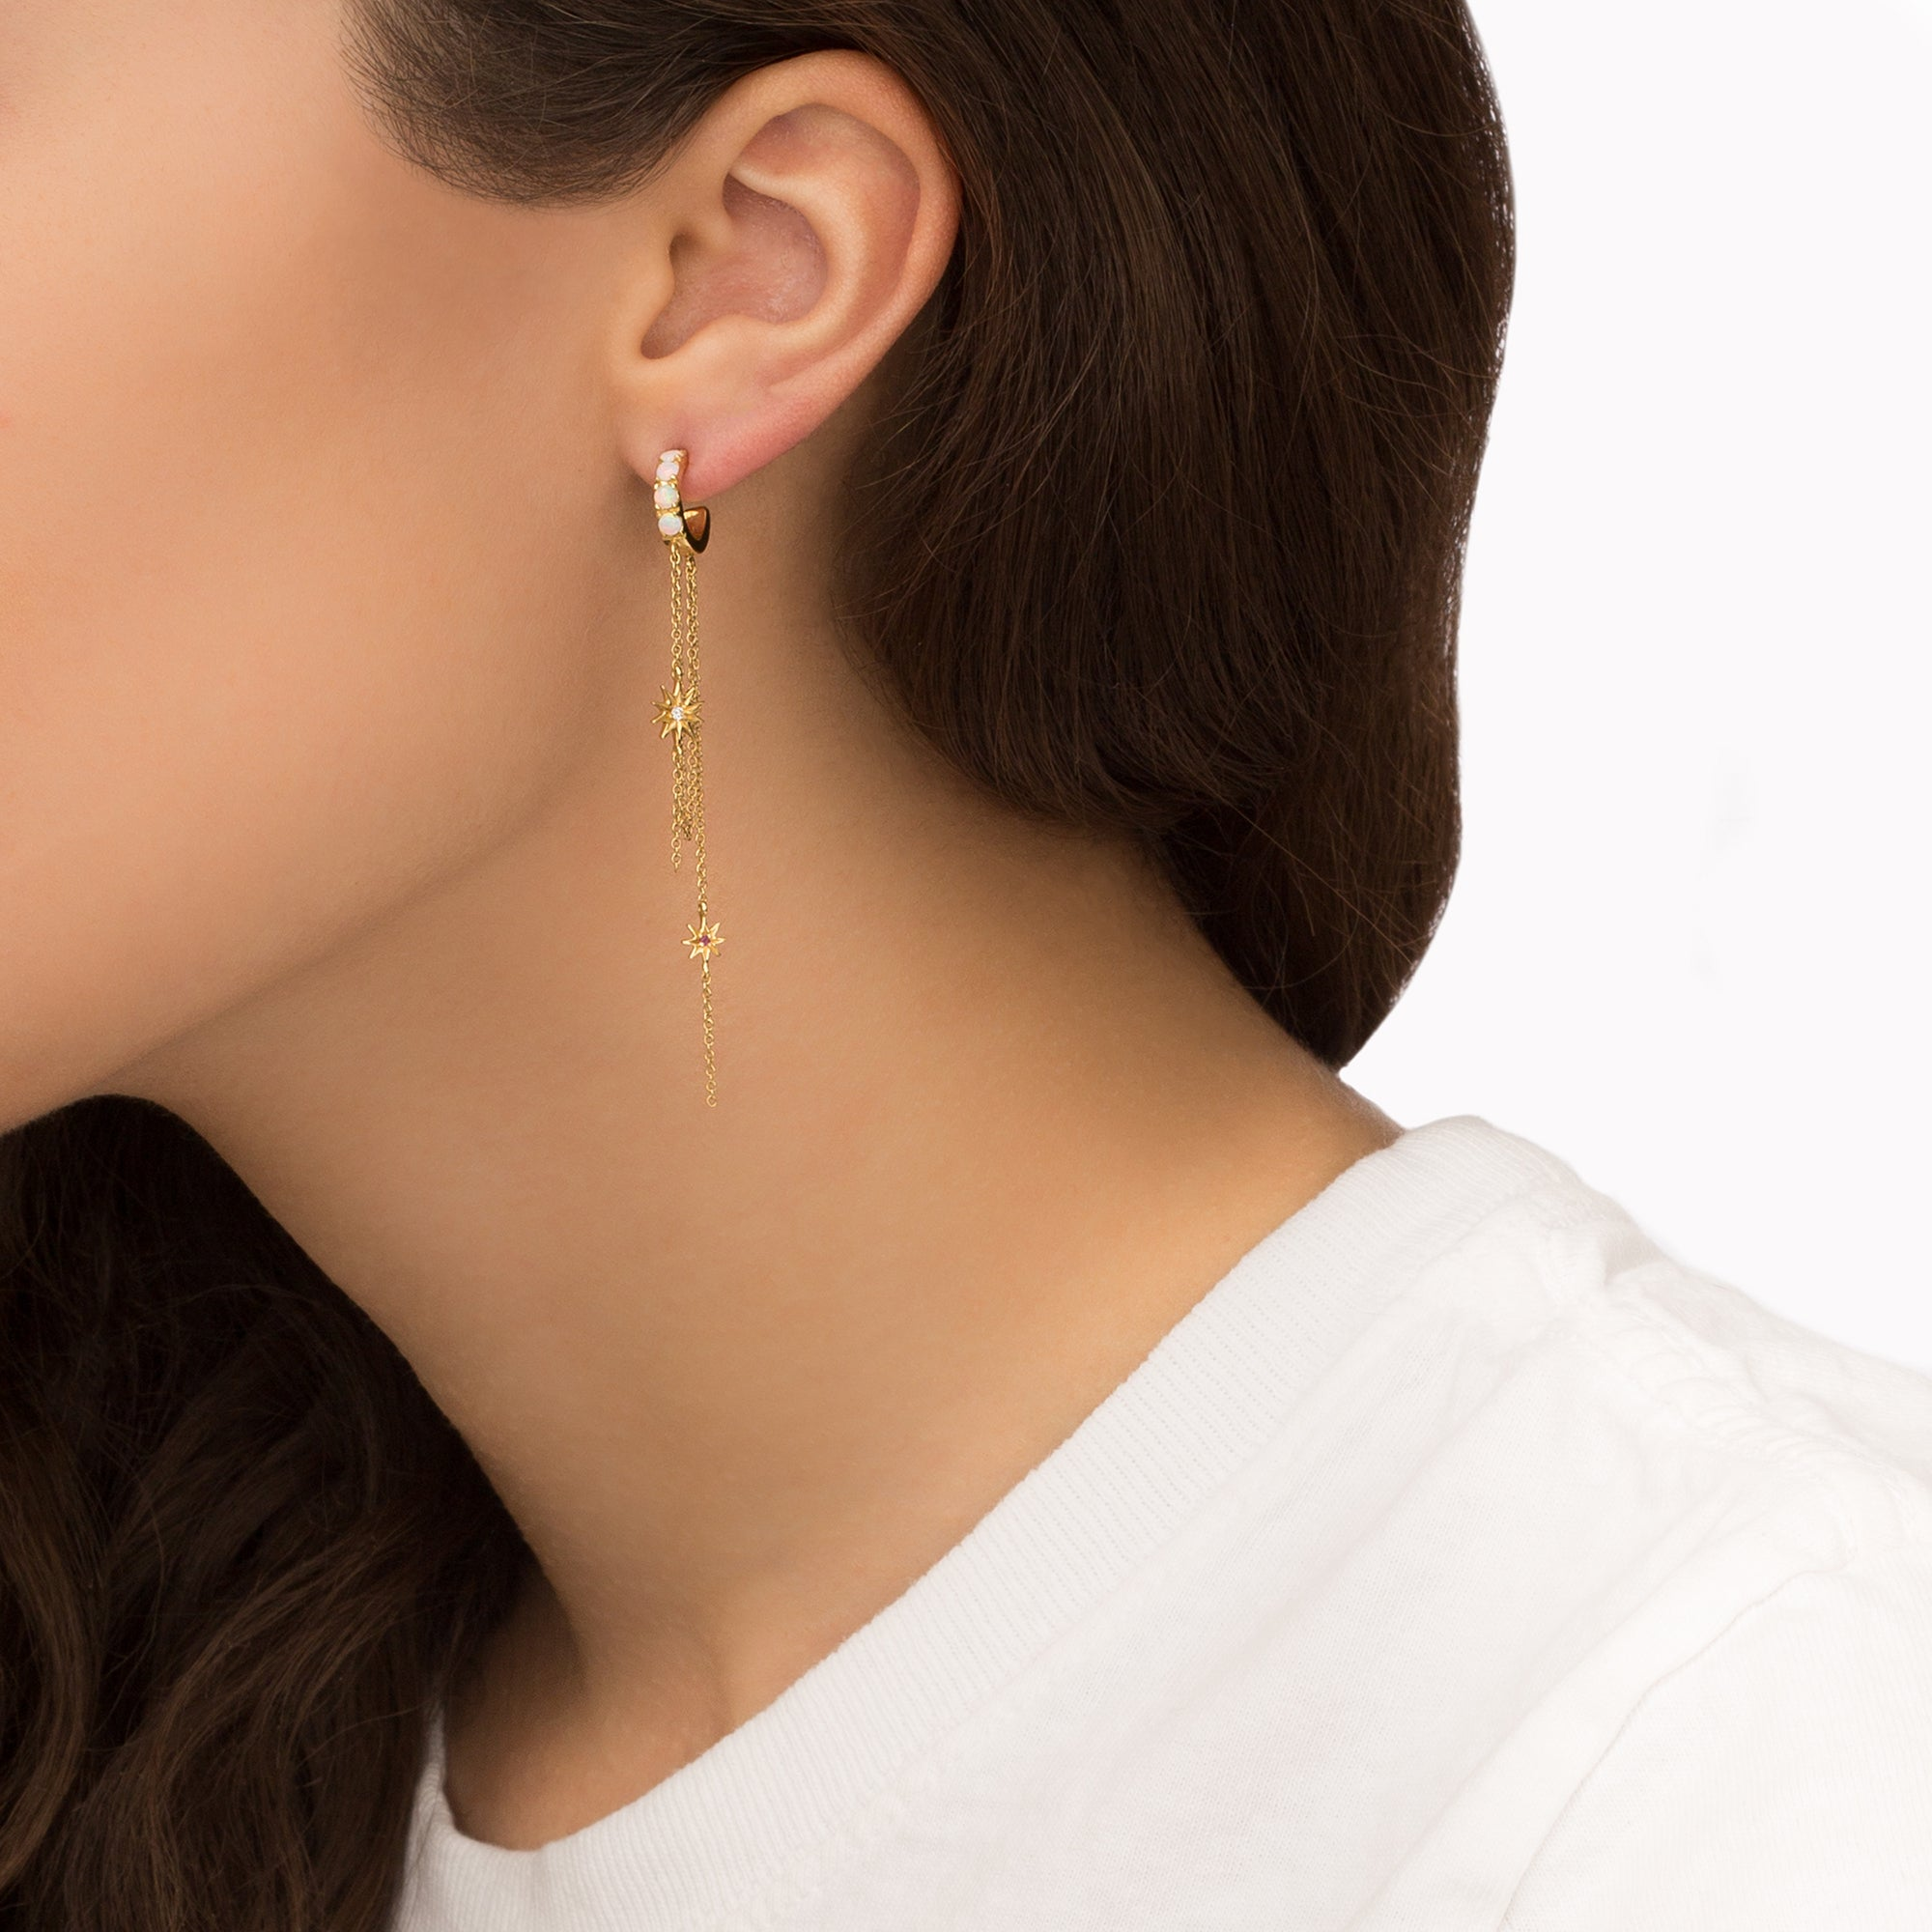 Sunshine Hoop Earrings - Suel - Earrings | Broken English Jewelry